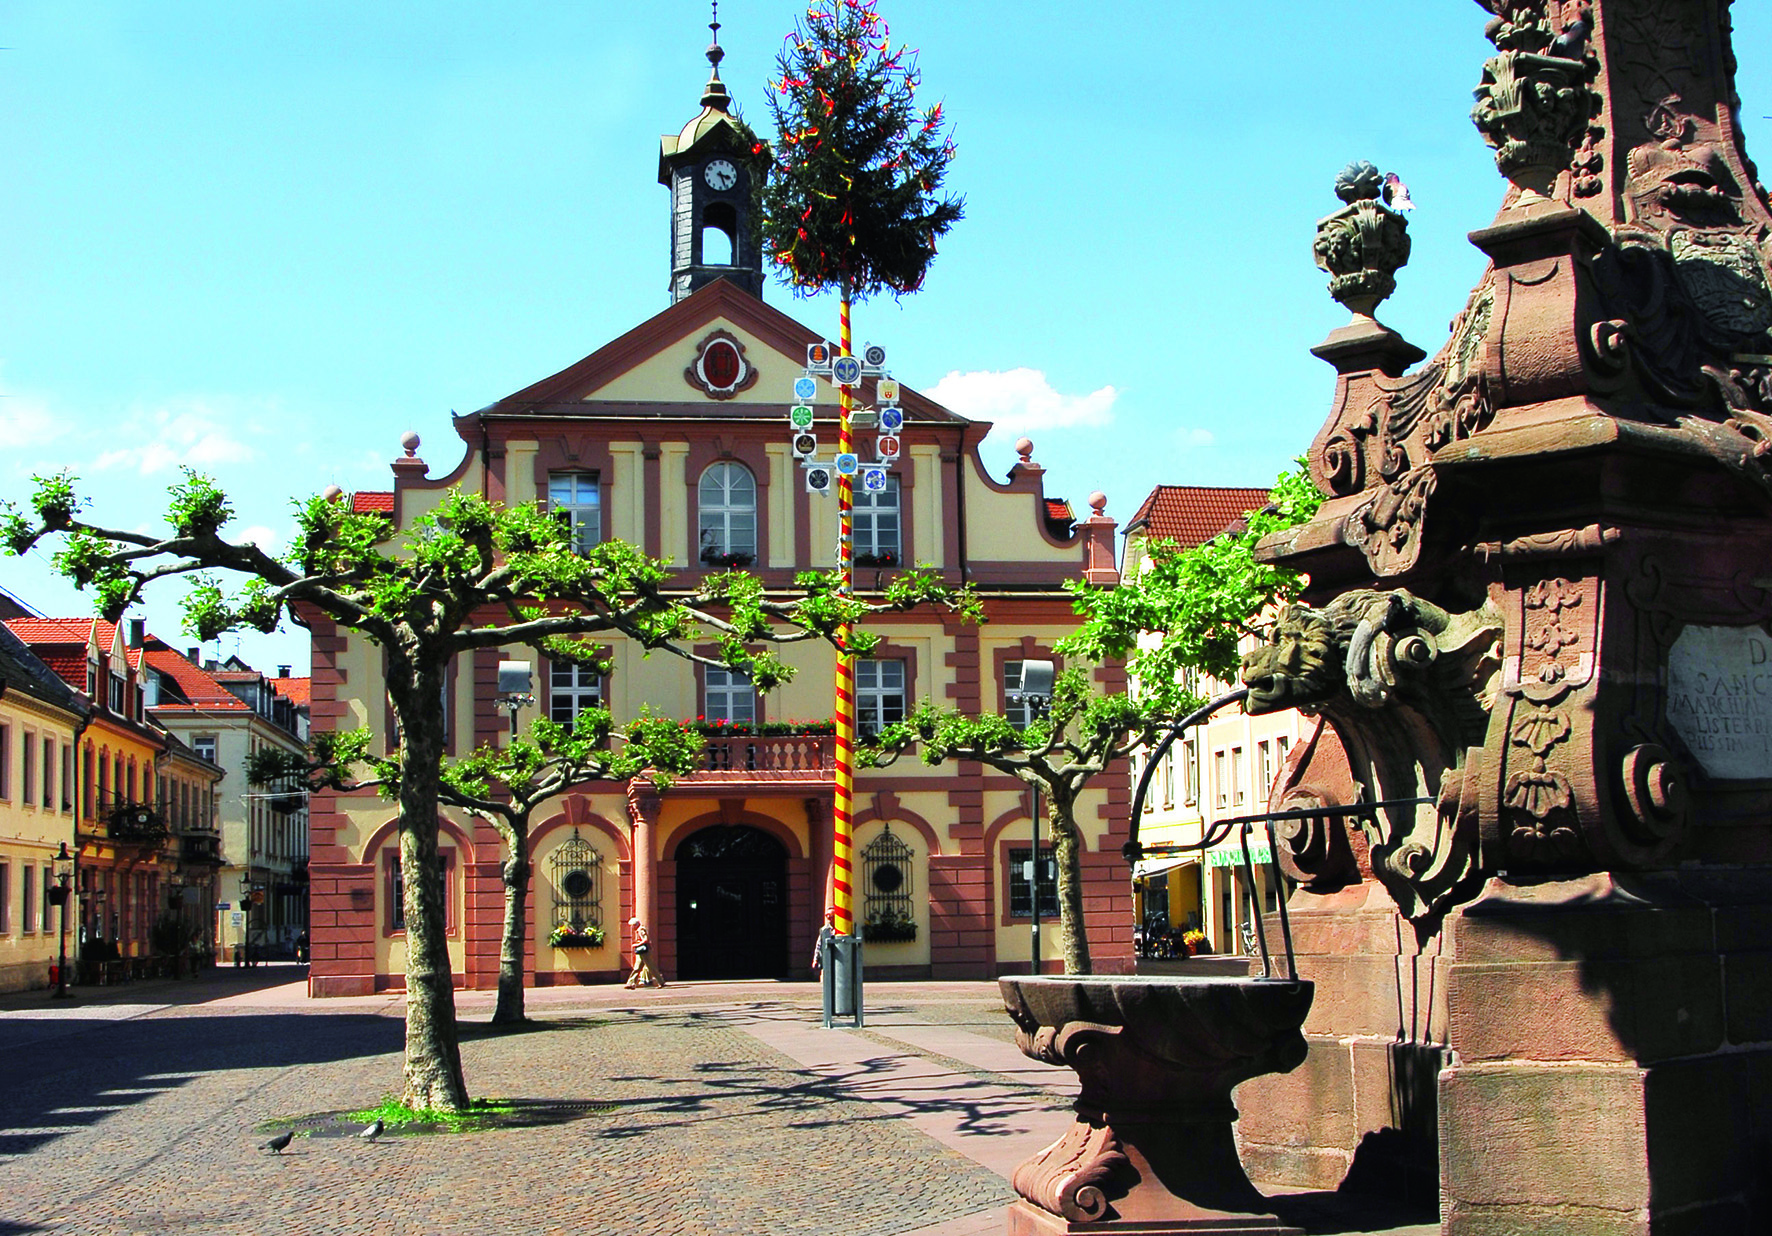 Reference Report Technical services of the city of Rastatt